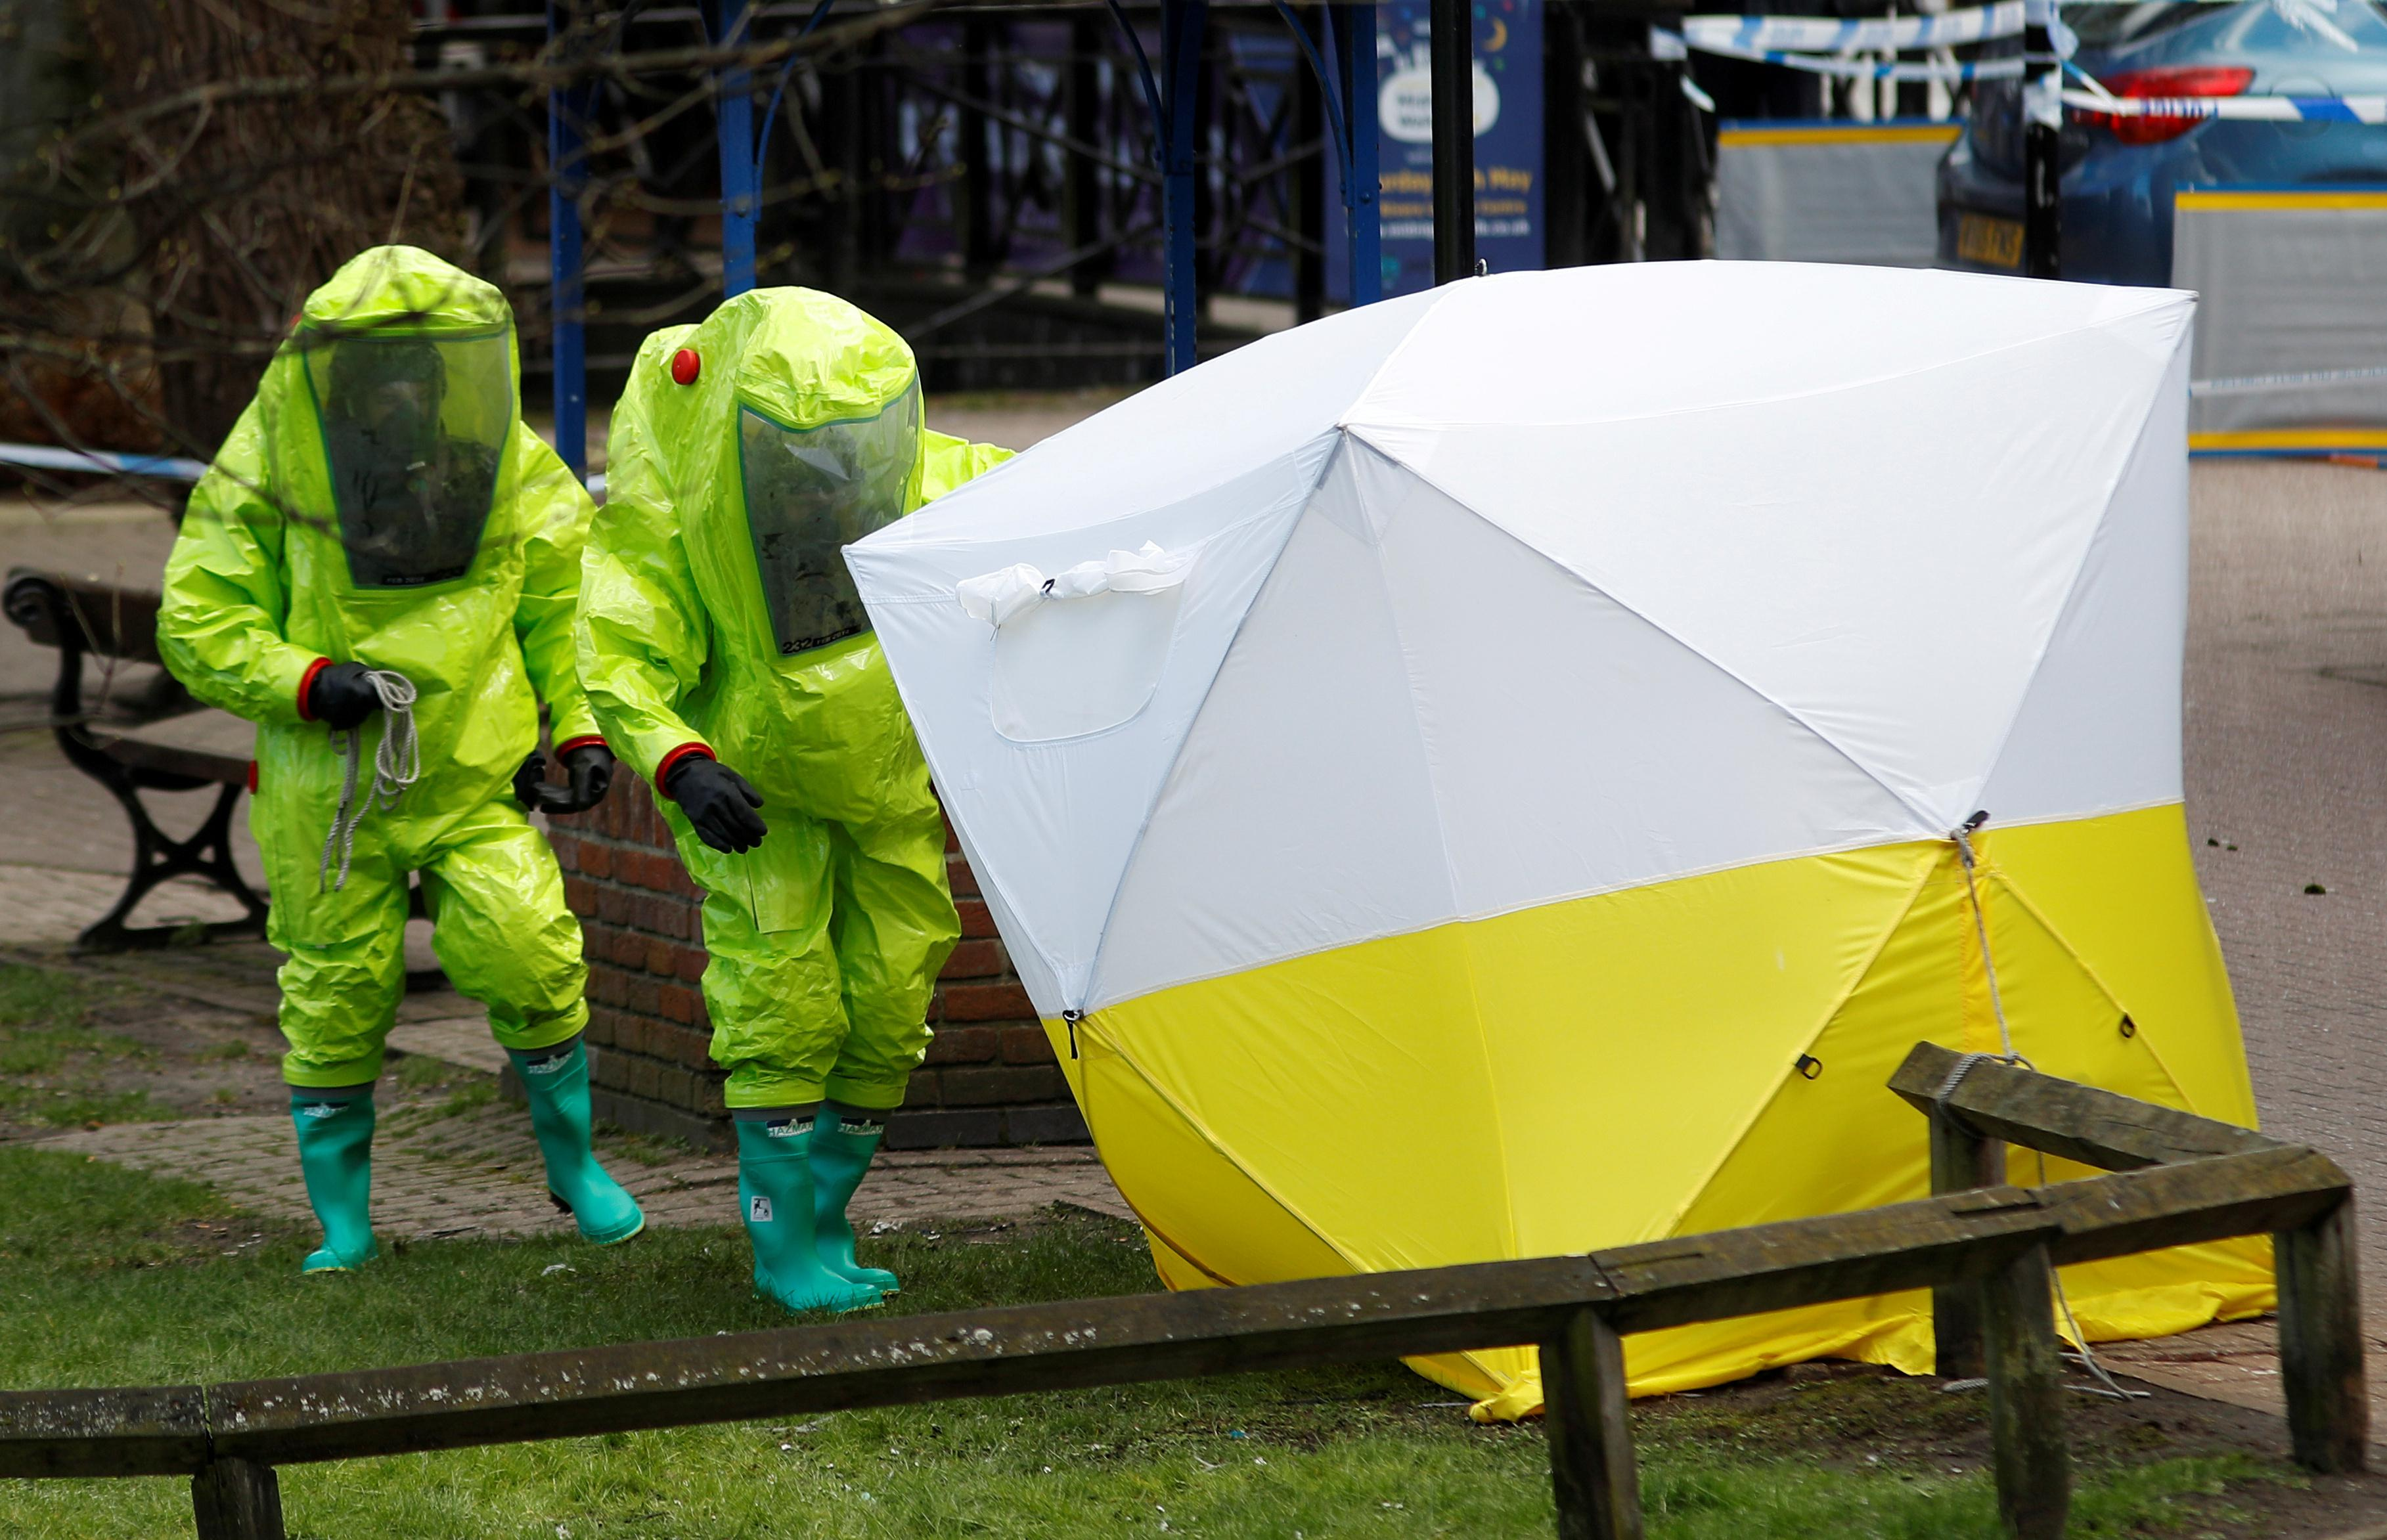 British officials in protective suits reposition the forensic tent, covering the bench where Sergei Skripal and his daughter Yulia were found unconscious in Salisbury, March 8, 2018. Peter Nicholls